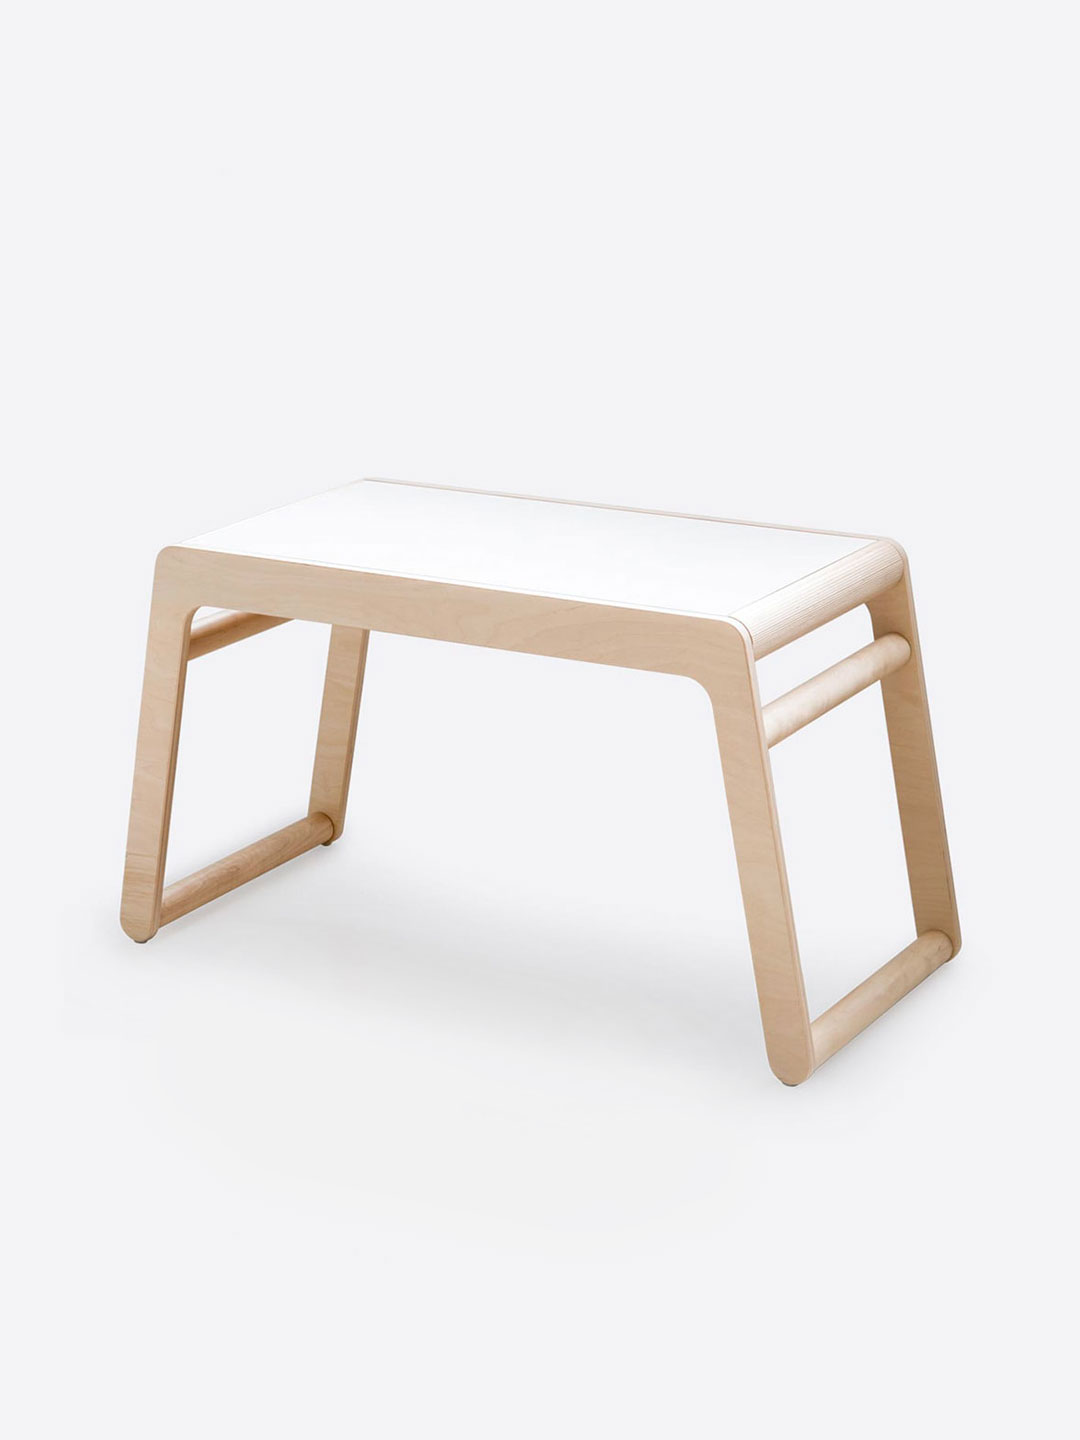 B Table with drawers